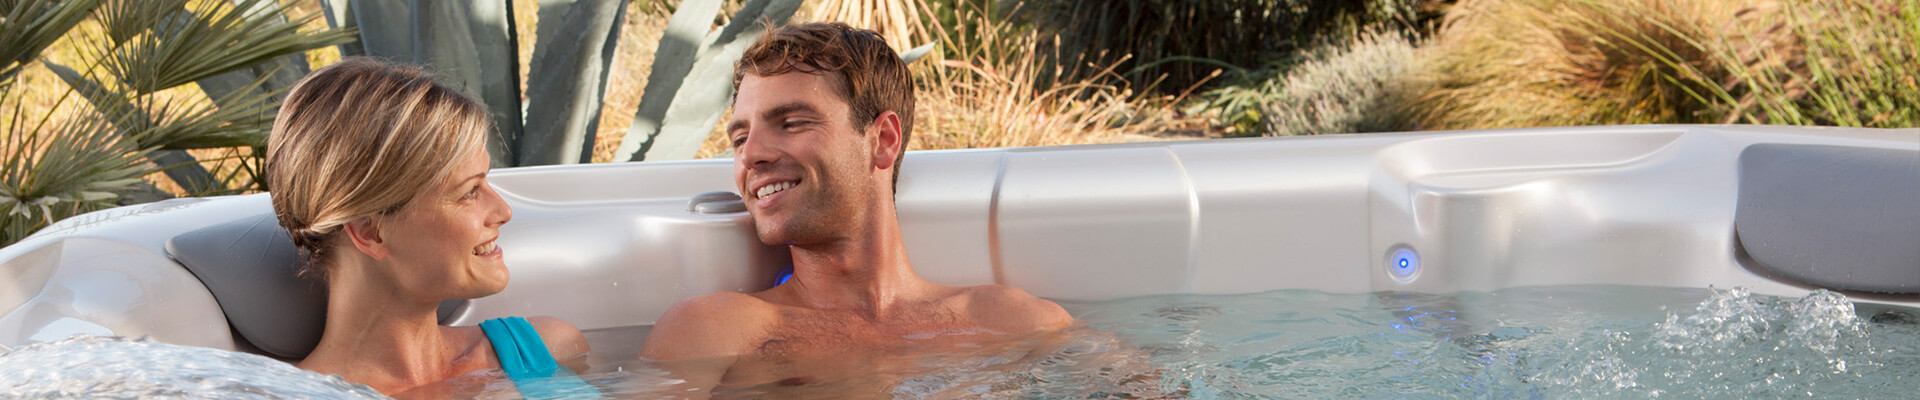 Arthritis? Restore Freedom of Movement in a Hot Tub, Billings Hot Spring Spas